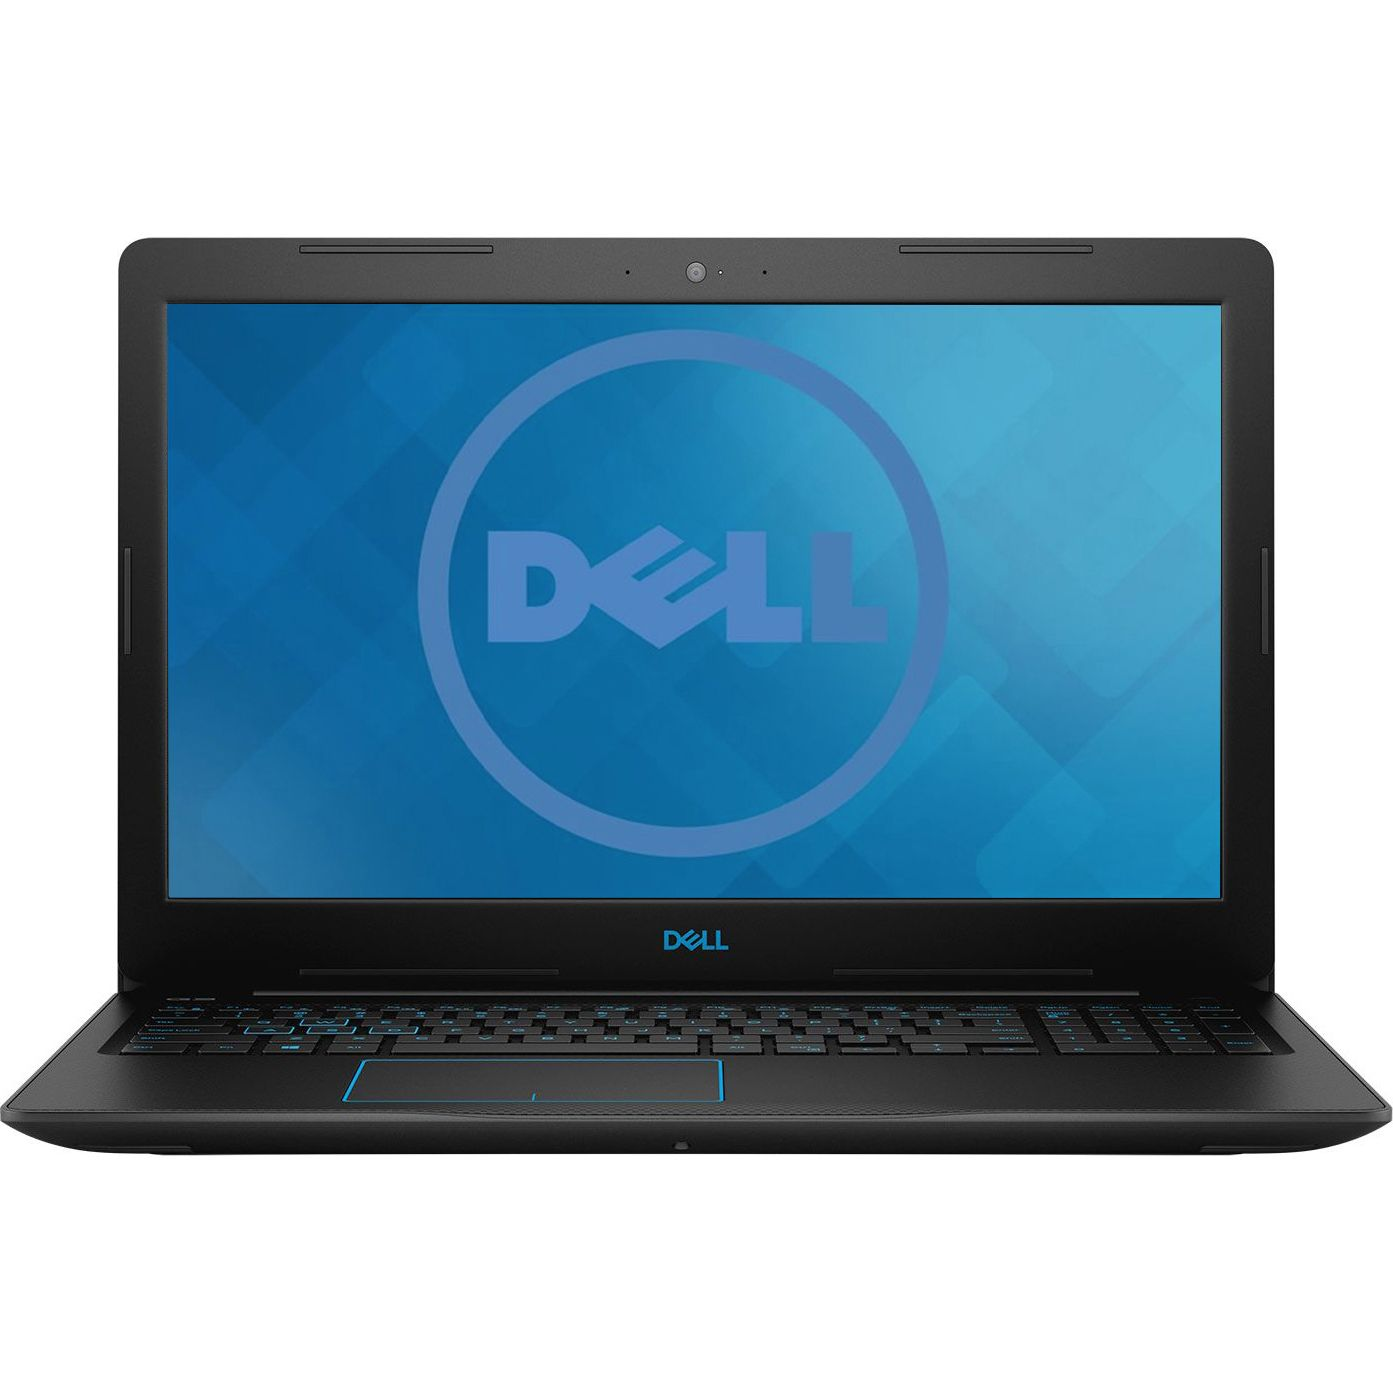 Notebook Dell G3 3579 15.6 Full HD Intel Core i7-8750H GTX 1050 Ti-4GB RAM 8GB SSD 256GB Linux